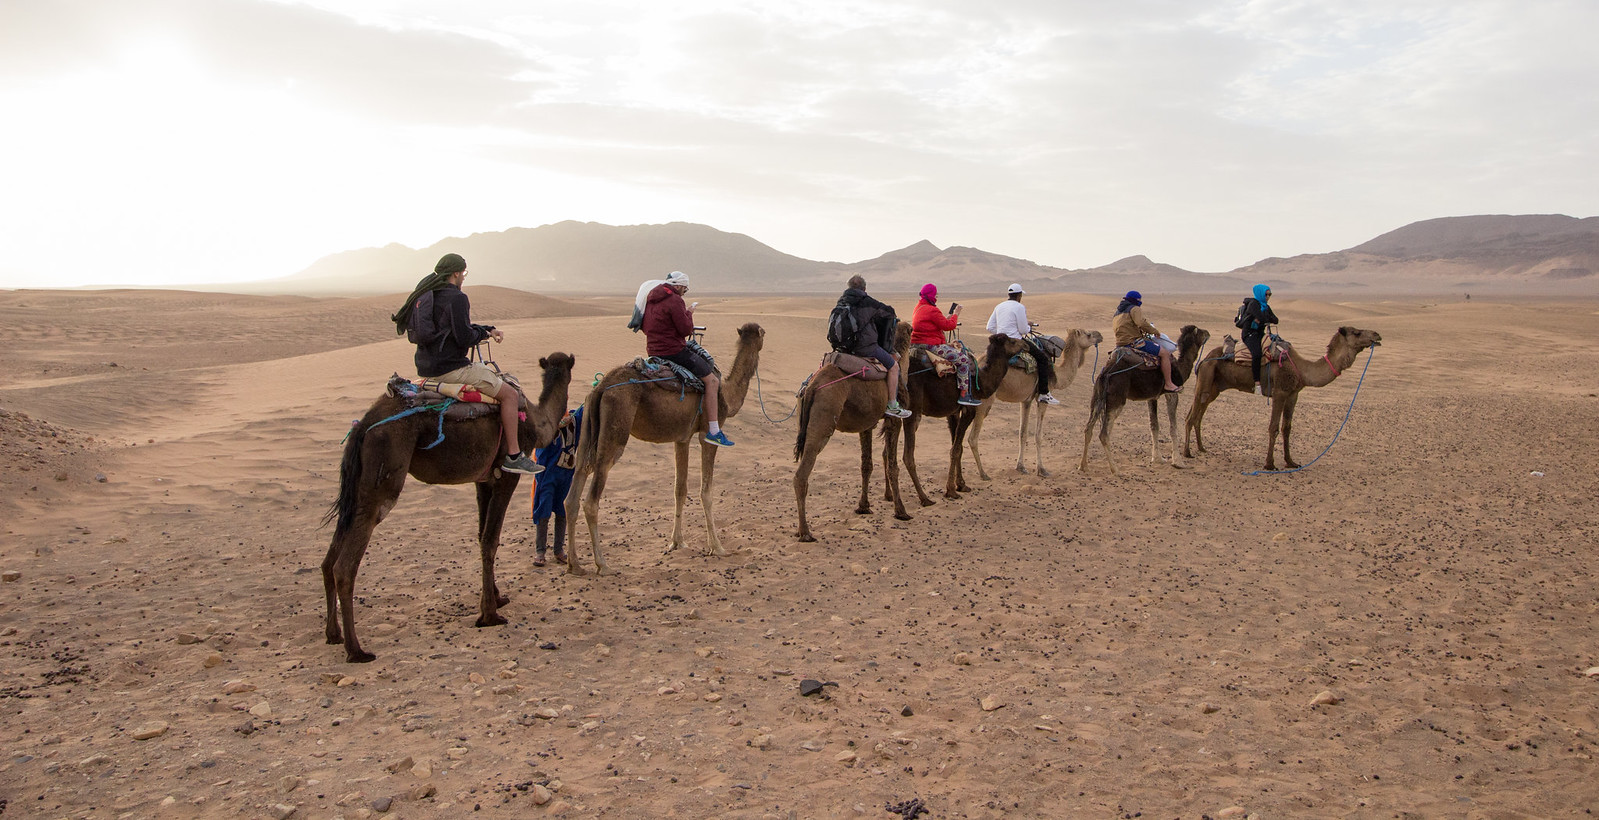 Riding camels in the Sahara, Morocco